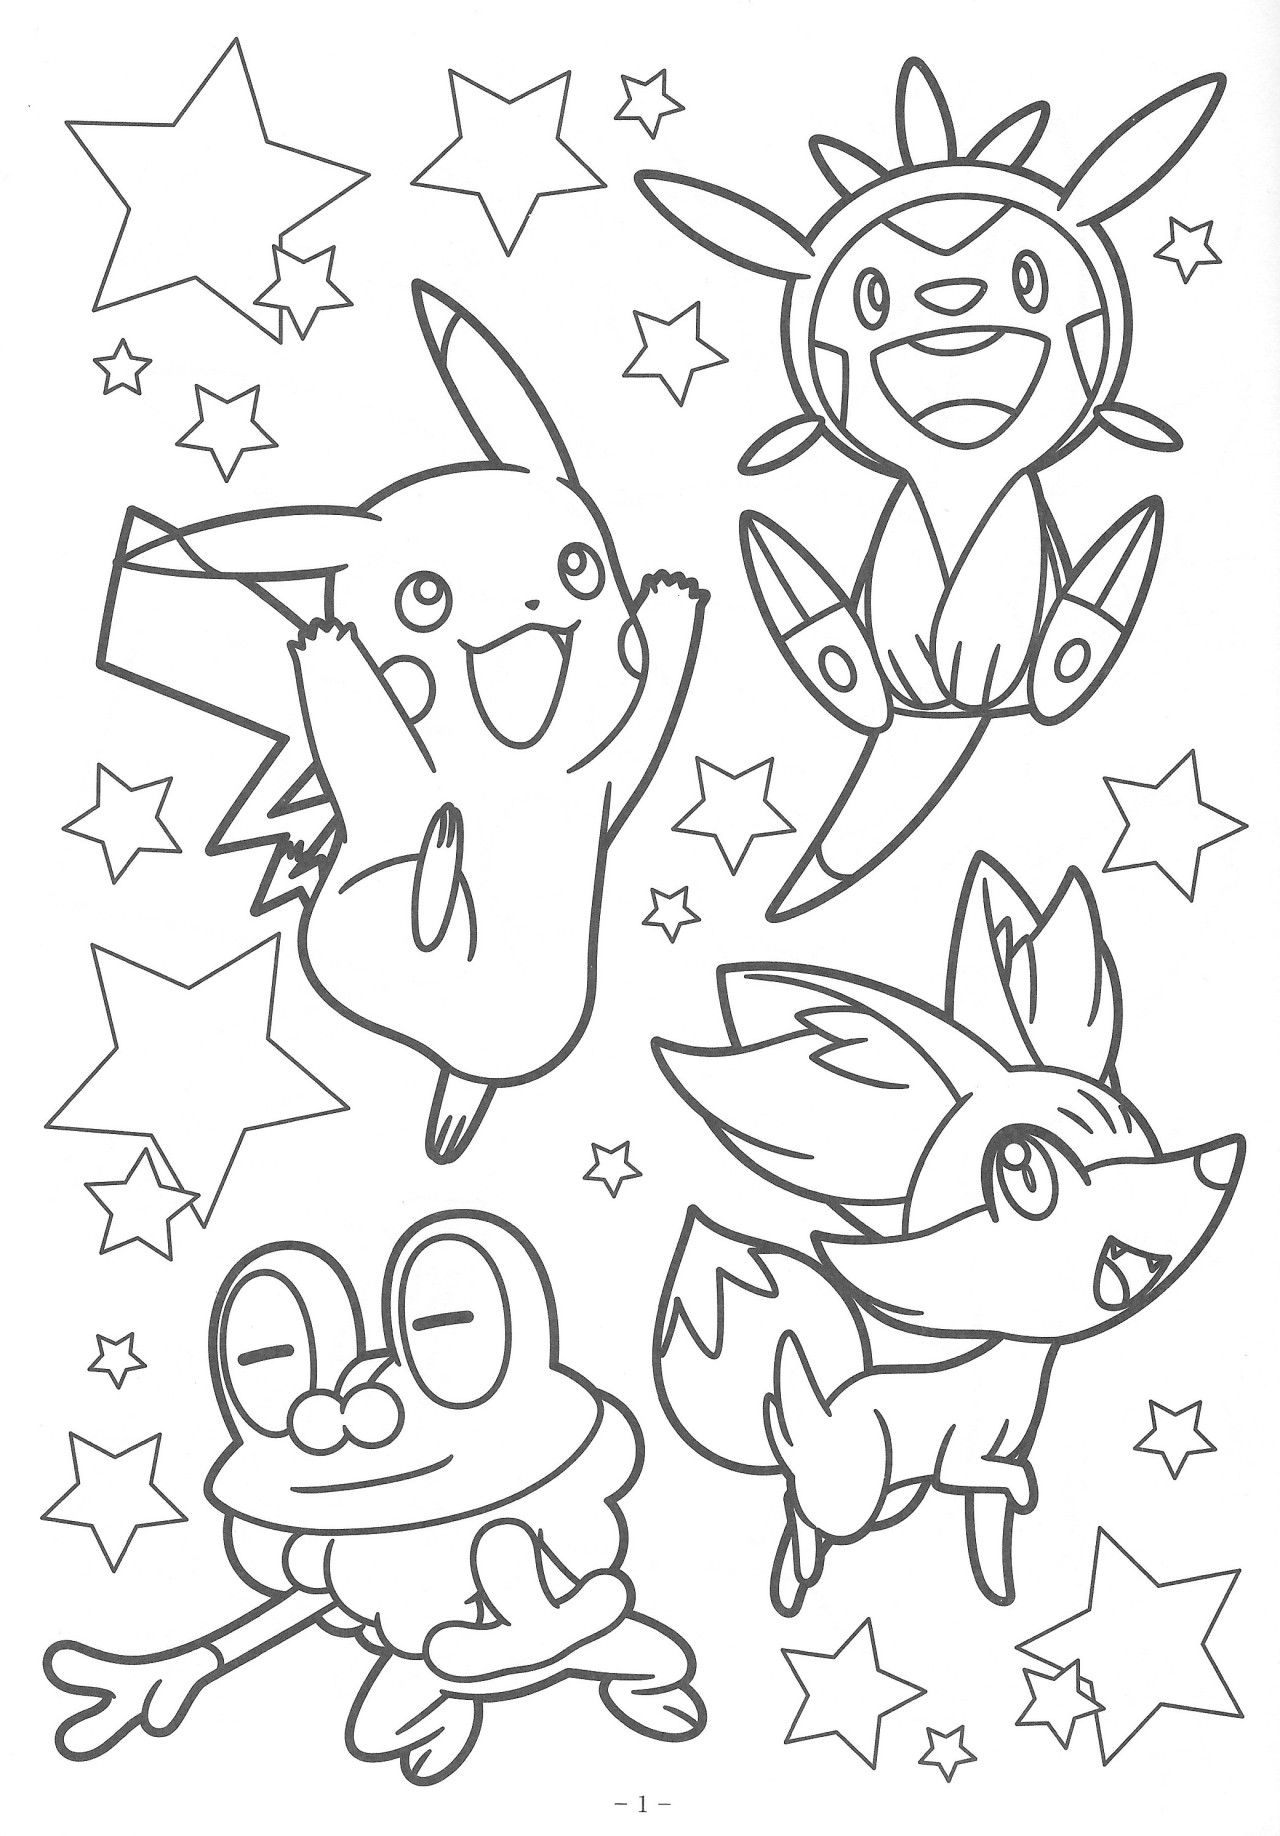 Pokemon Related Scans From Books And Merchandise Background By Zaiqukaj Off Of A Pokemon Time Cl Pokemon Coloring Pages Pikachu Coloring Page Pokemon Coloring